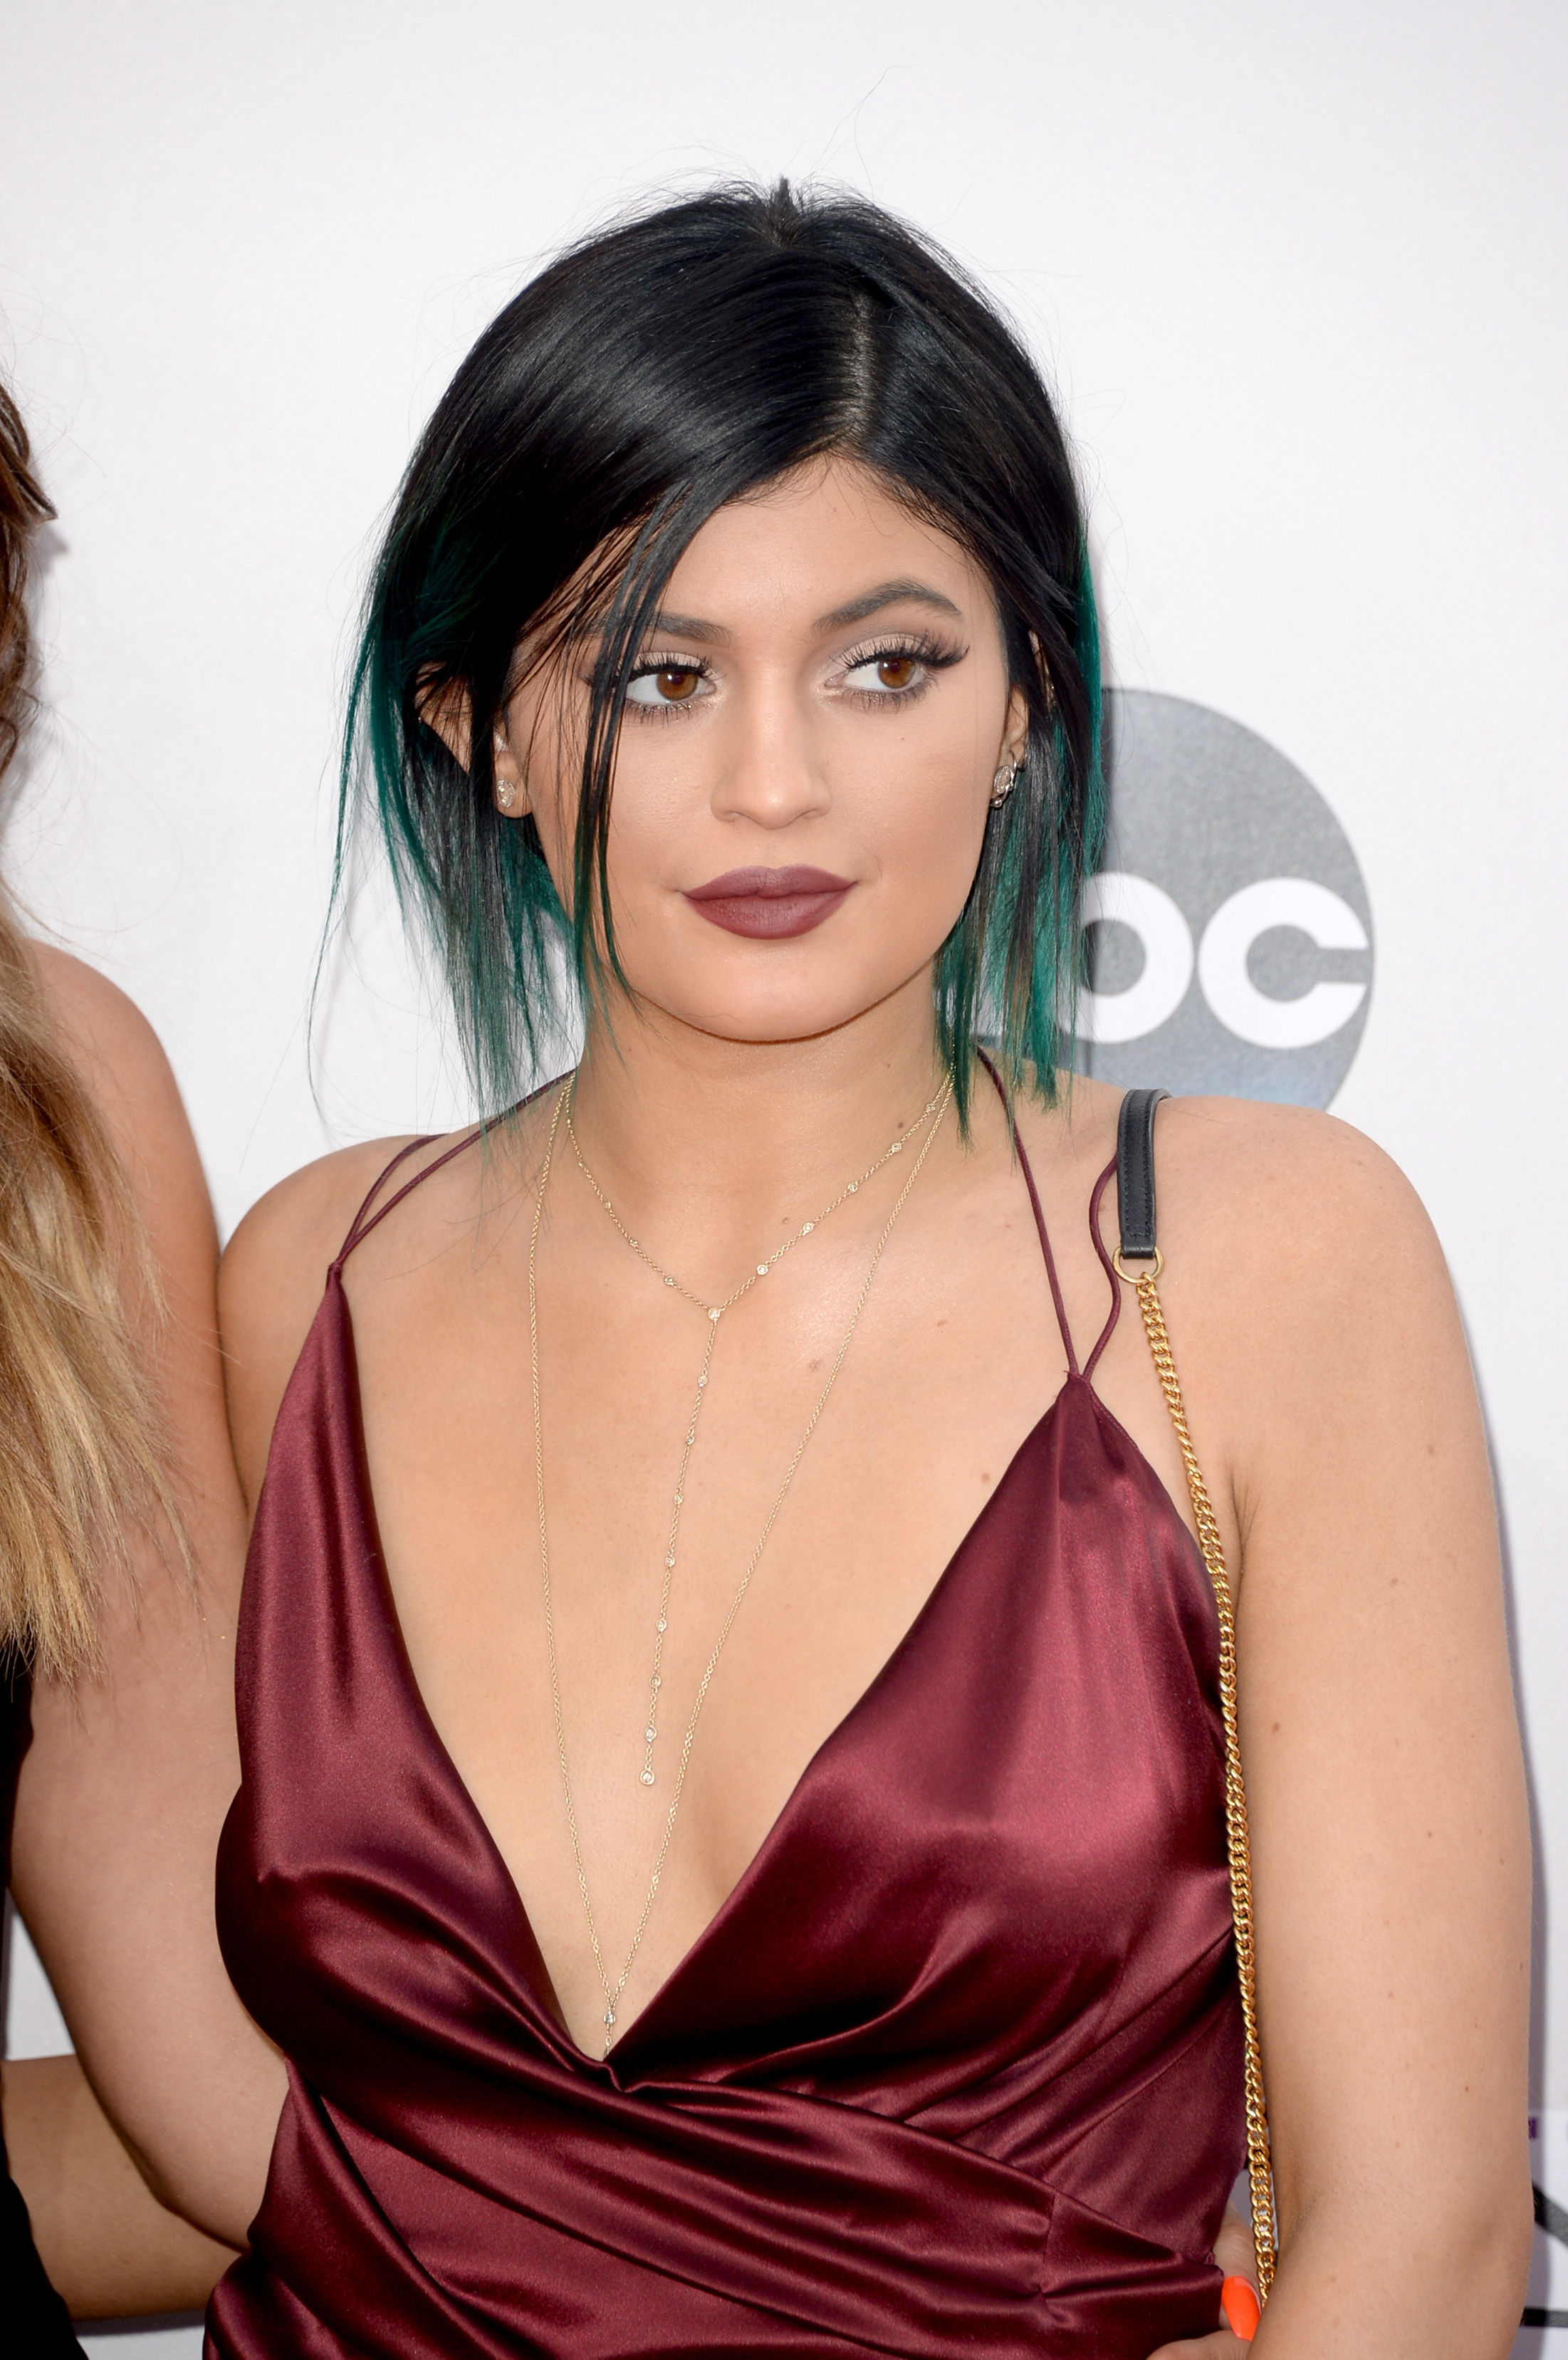 Kylie Hair Kouture Extensions Look Just As Good On Normal Ladies As